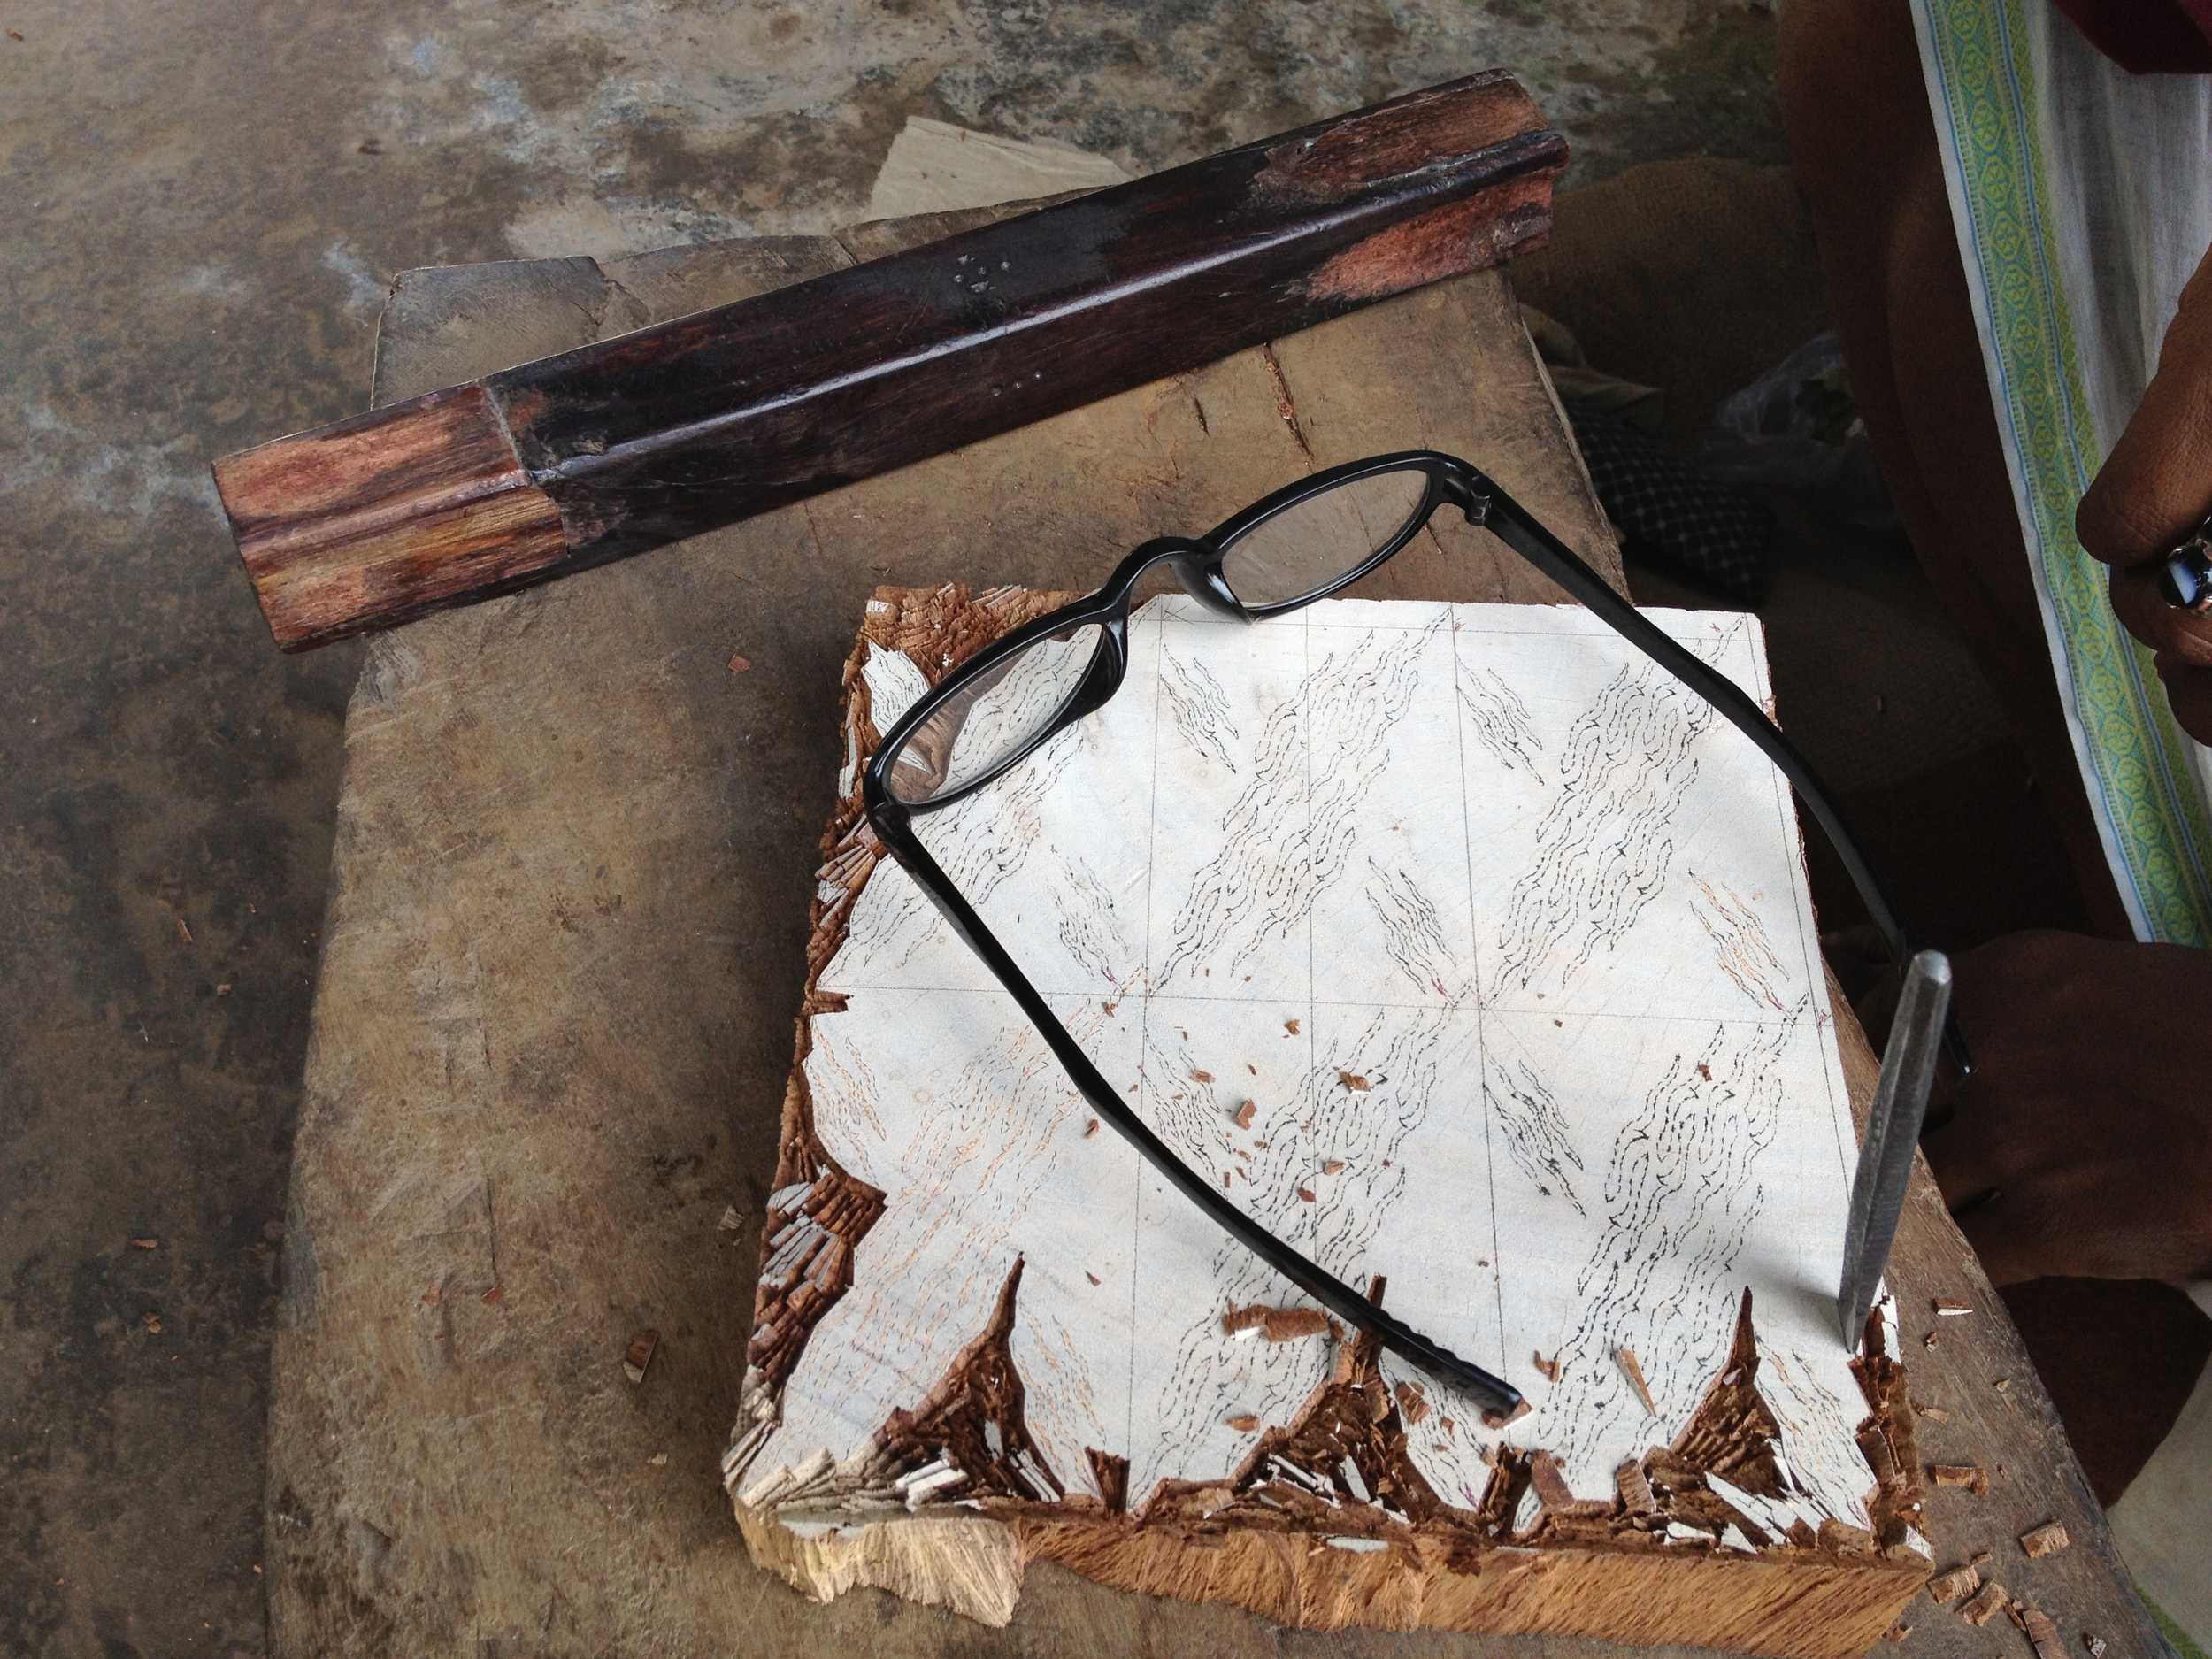 Jogdish's work station, eyeglasses, wooden block, tools, Khojwa, Varanasi, 2013